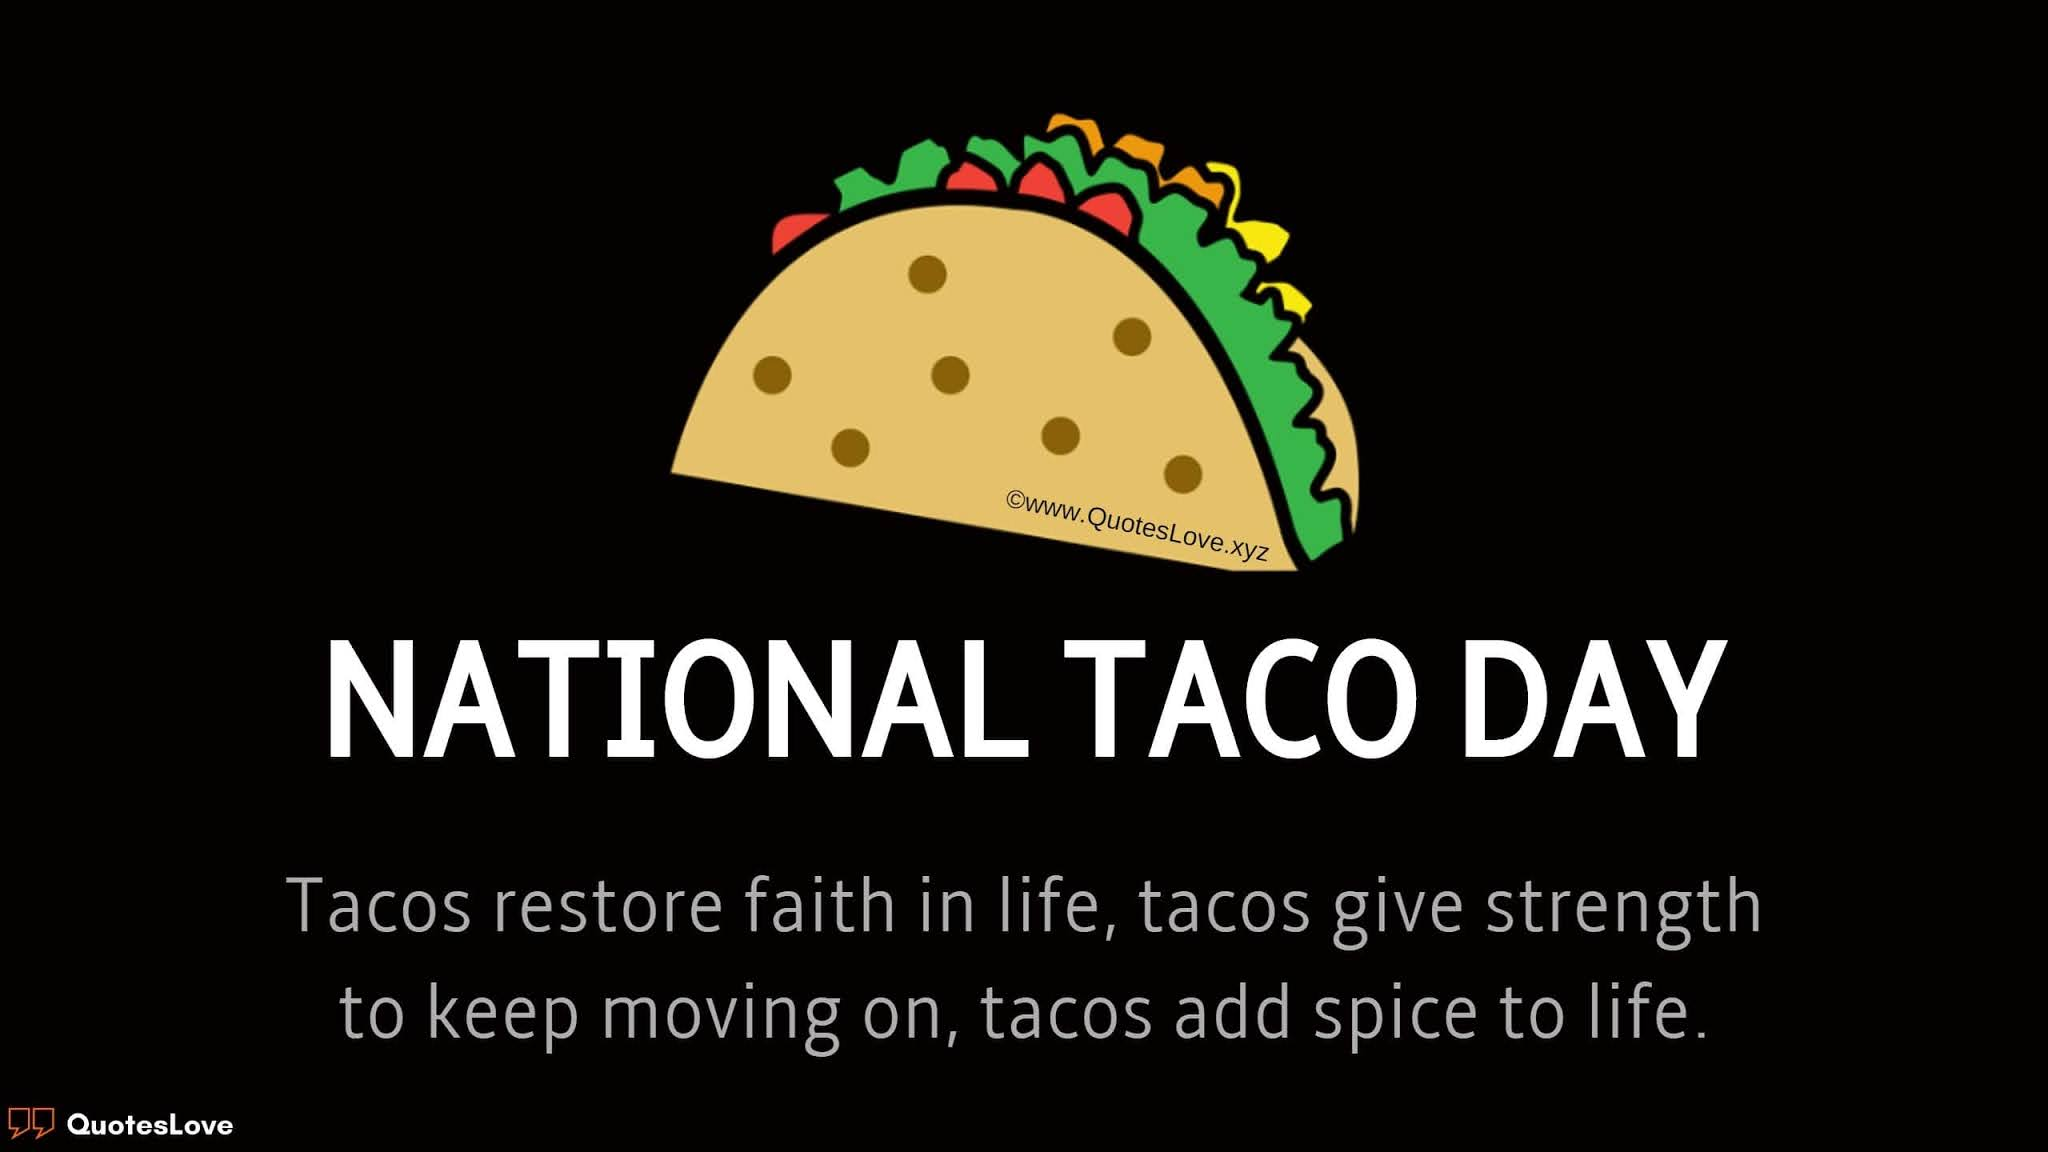 National Taco Day Quotes, Sayings, Instagram Captions, Wishes, Images, Pictures, Poster, Photos